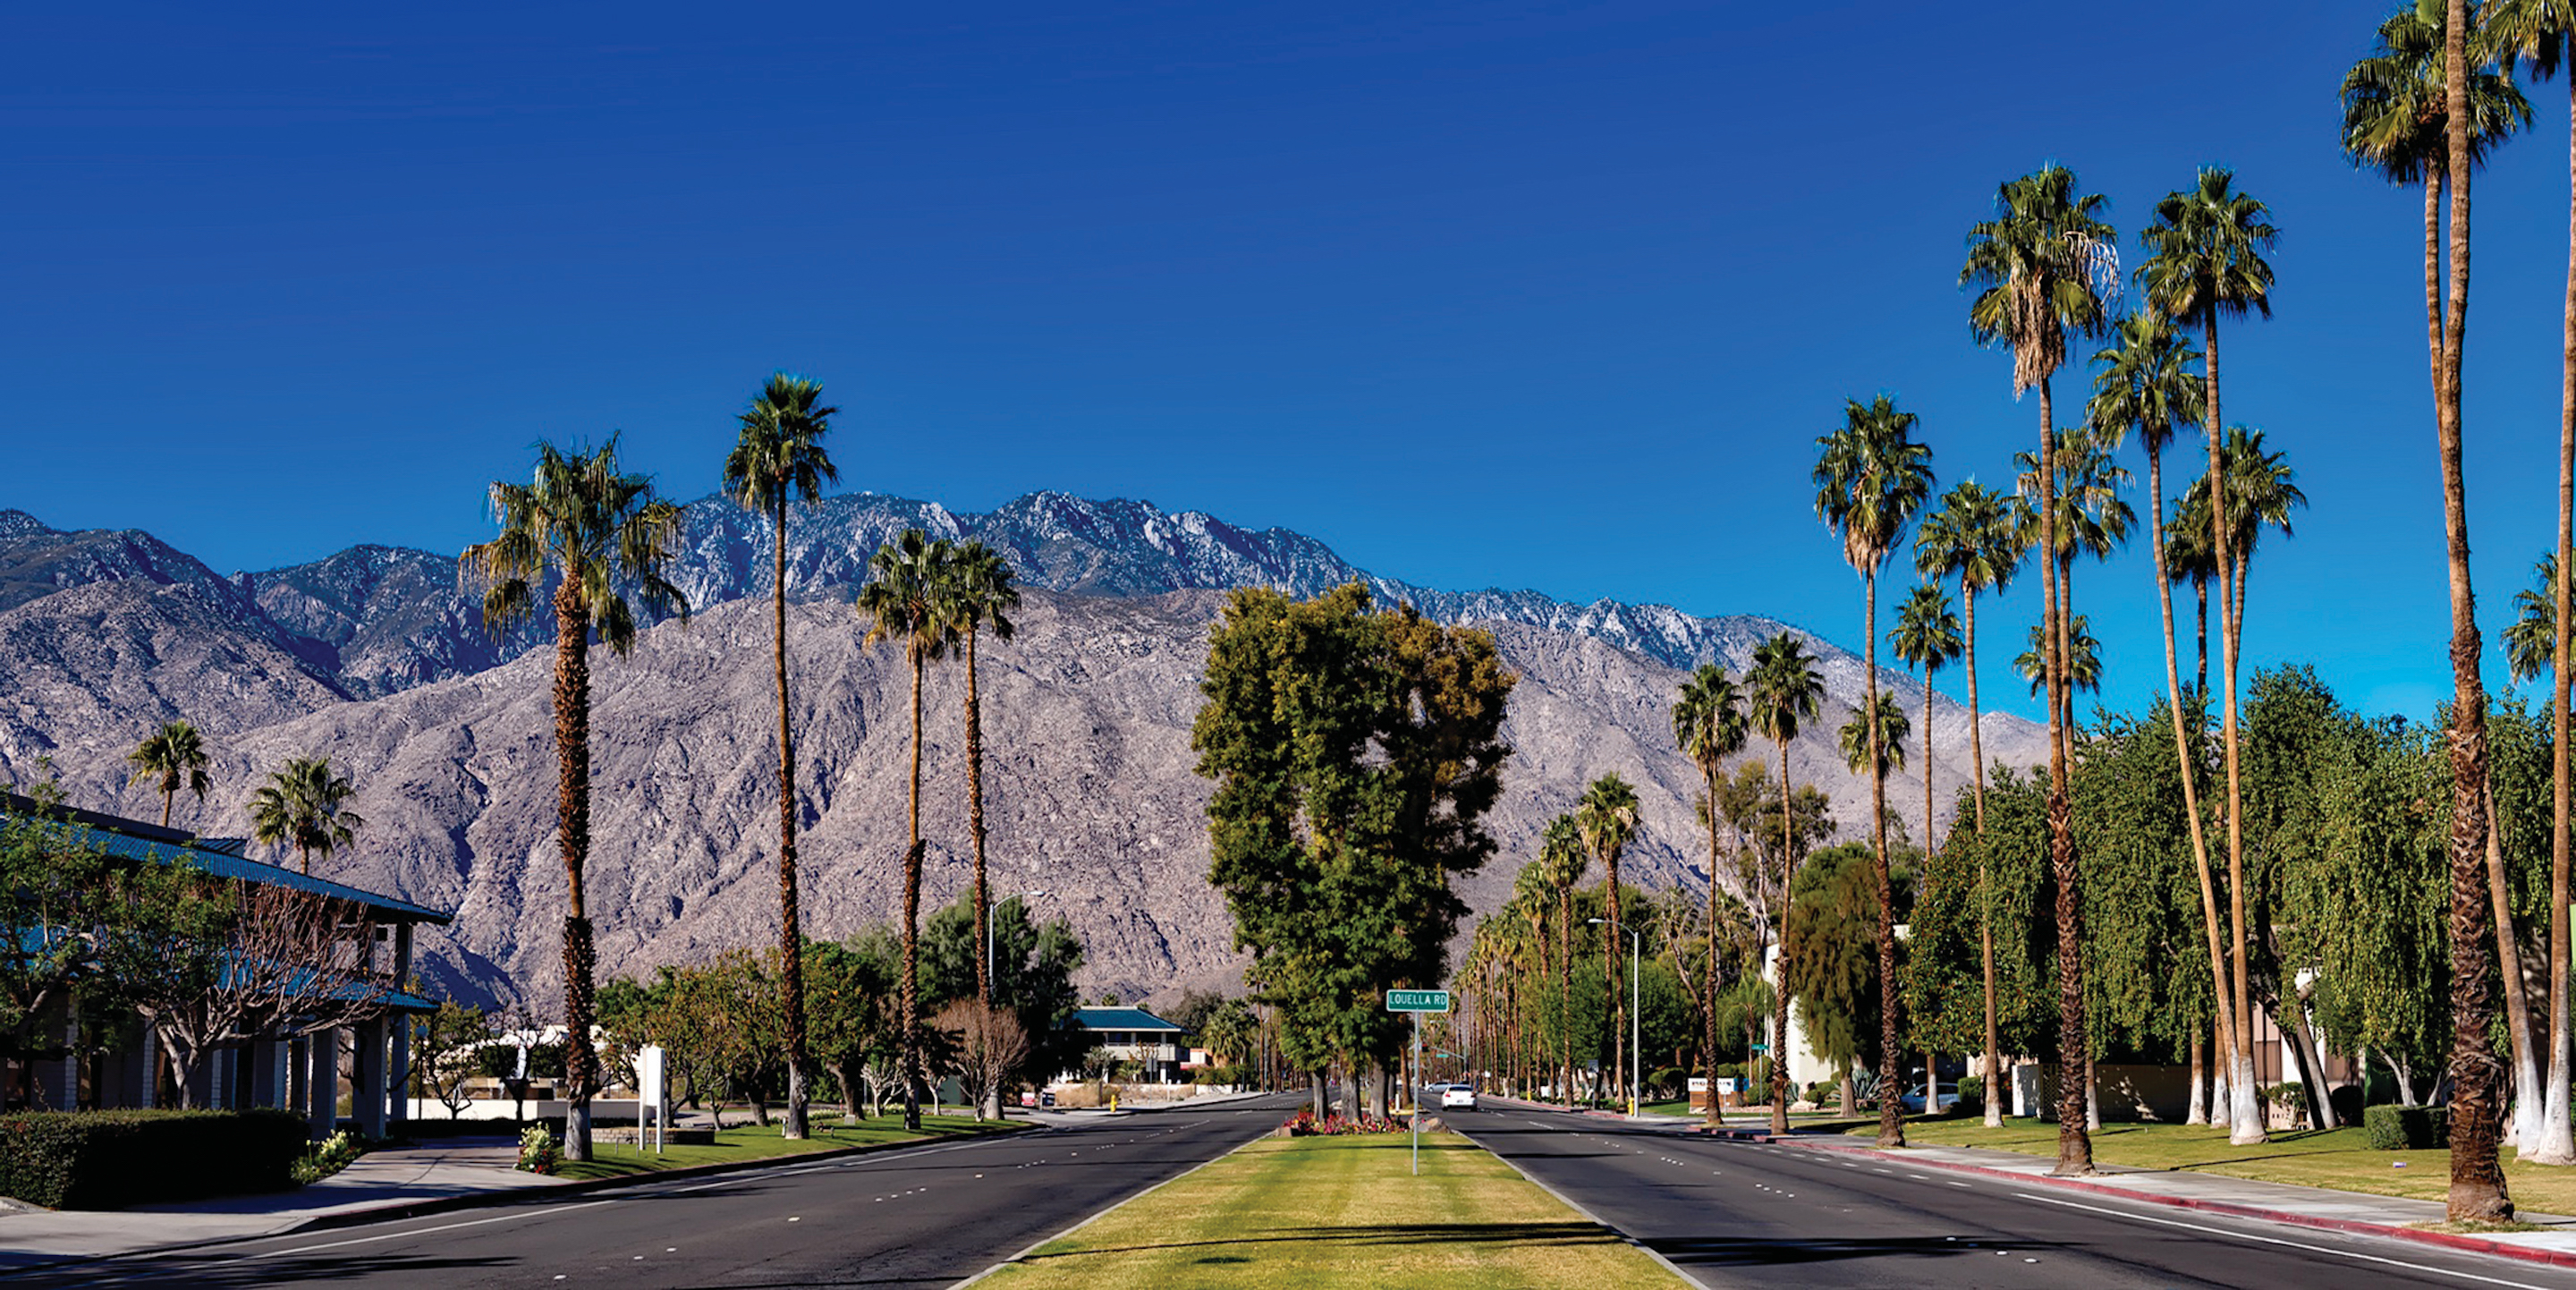 A two-way road showing palm trees and mountains